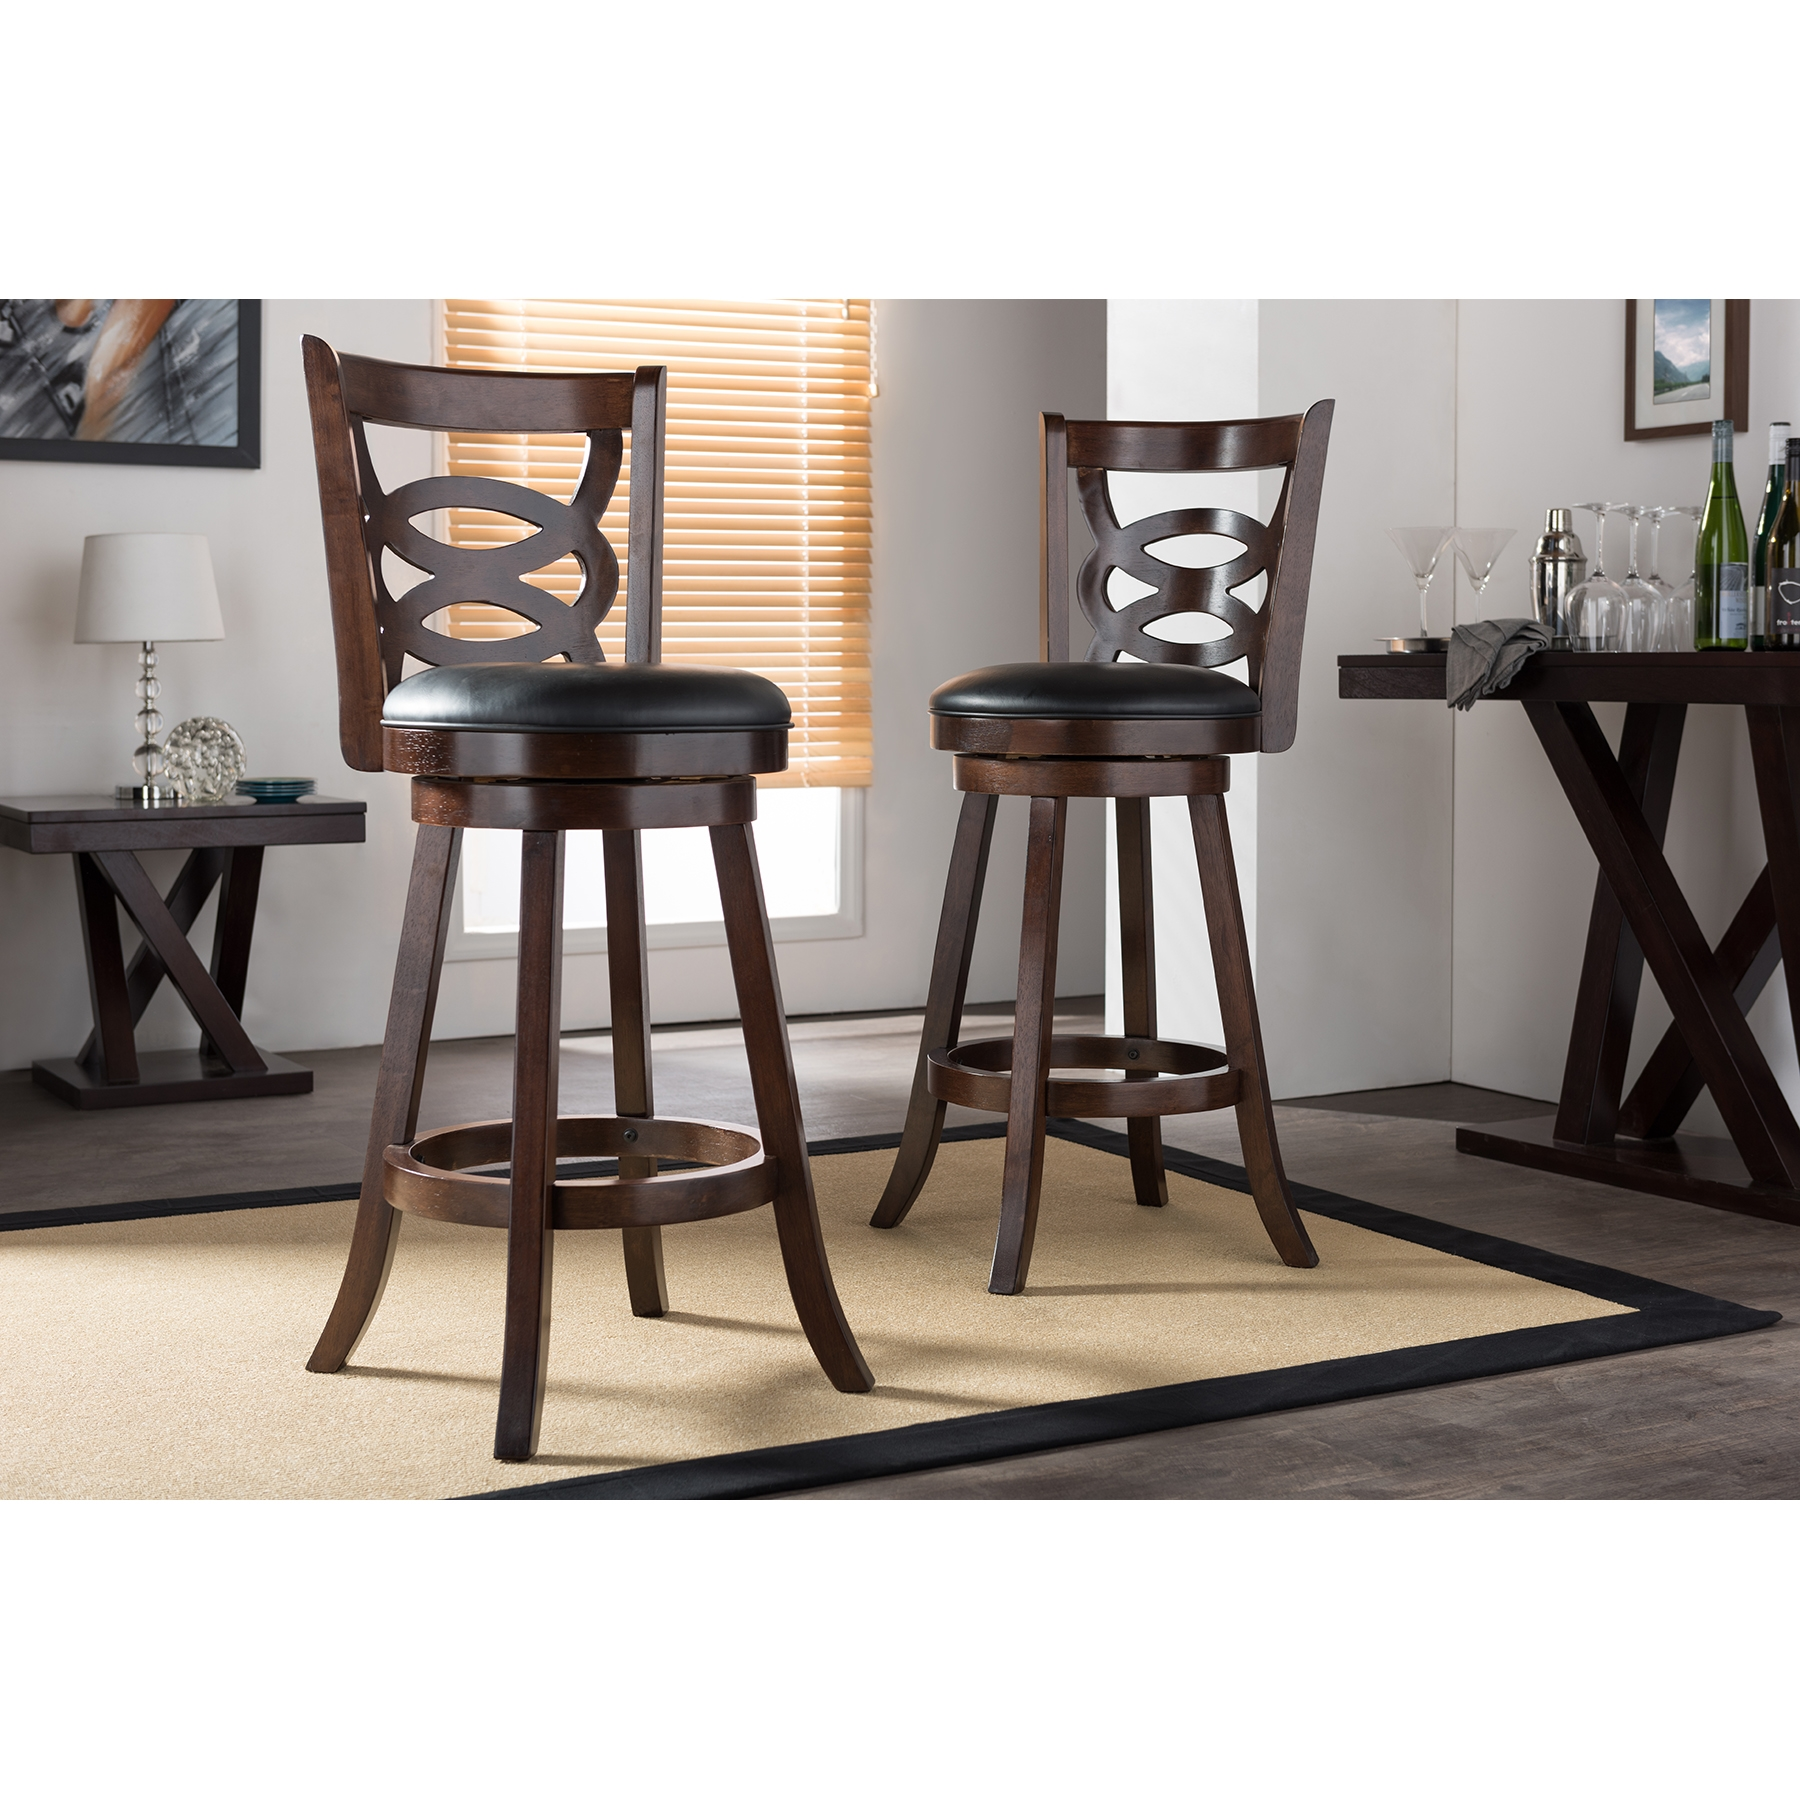 ... Baxton Studio Anthea Espresso Brown 29  Swivel Bar Stool with Upholstered Seat (Set of  sc 1 st  Baxton Studio Outlet & Baxton Studio Anthea Espresso Brown 29